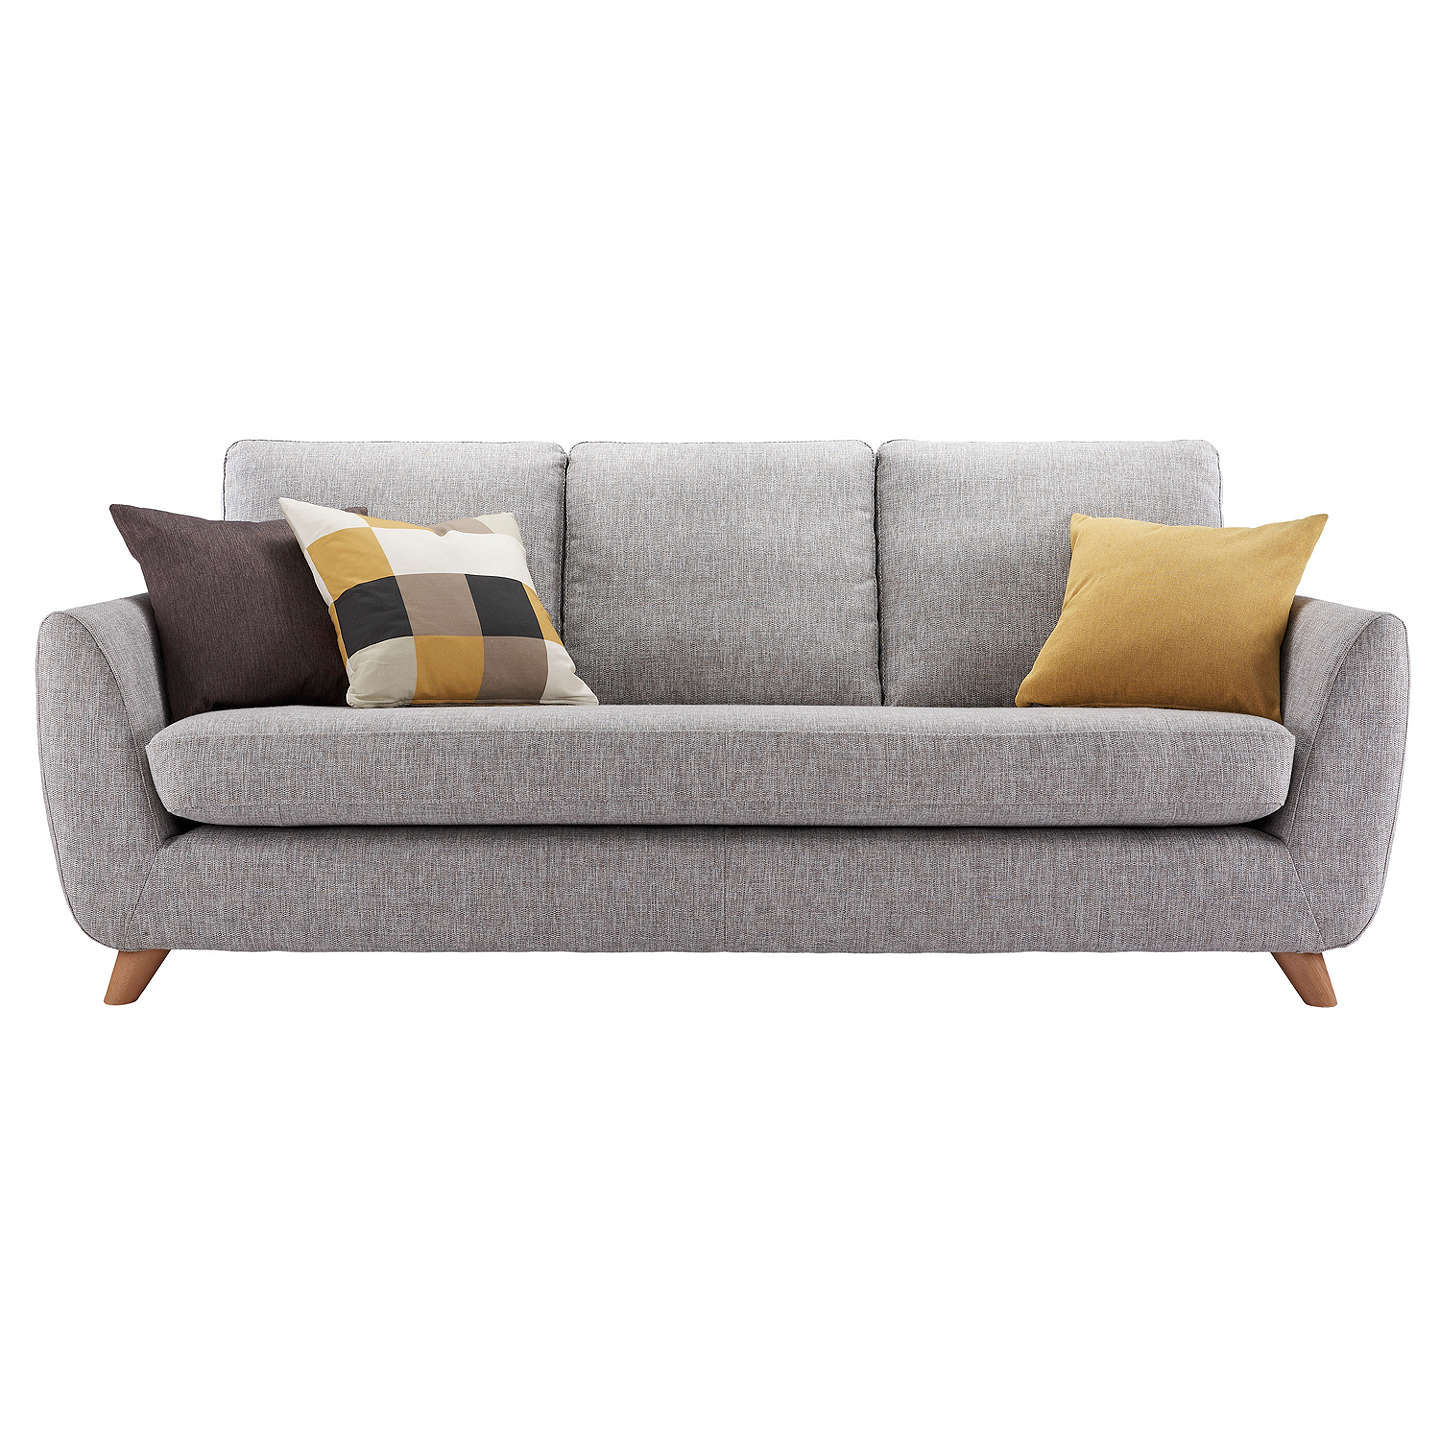 g plan vintage the sixty seven large 3 seater sofa marl grey at john lewis. Black Bedroom Furniture Sets. Home Design Ideas